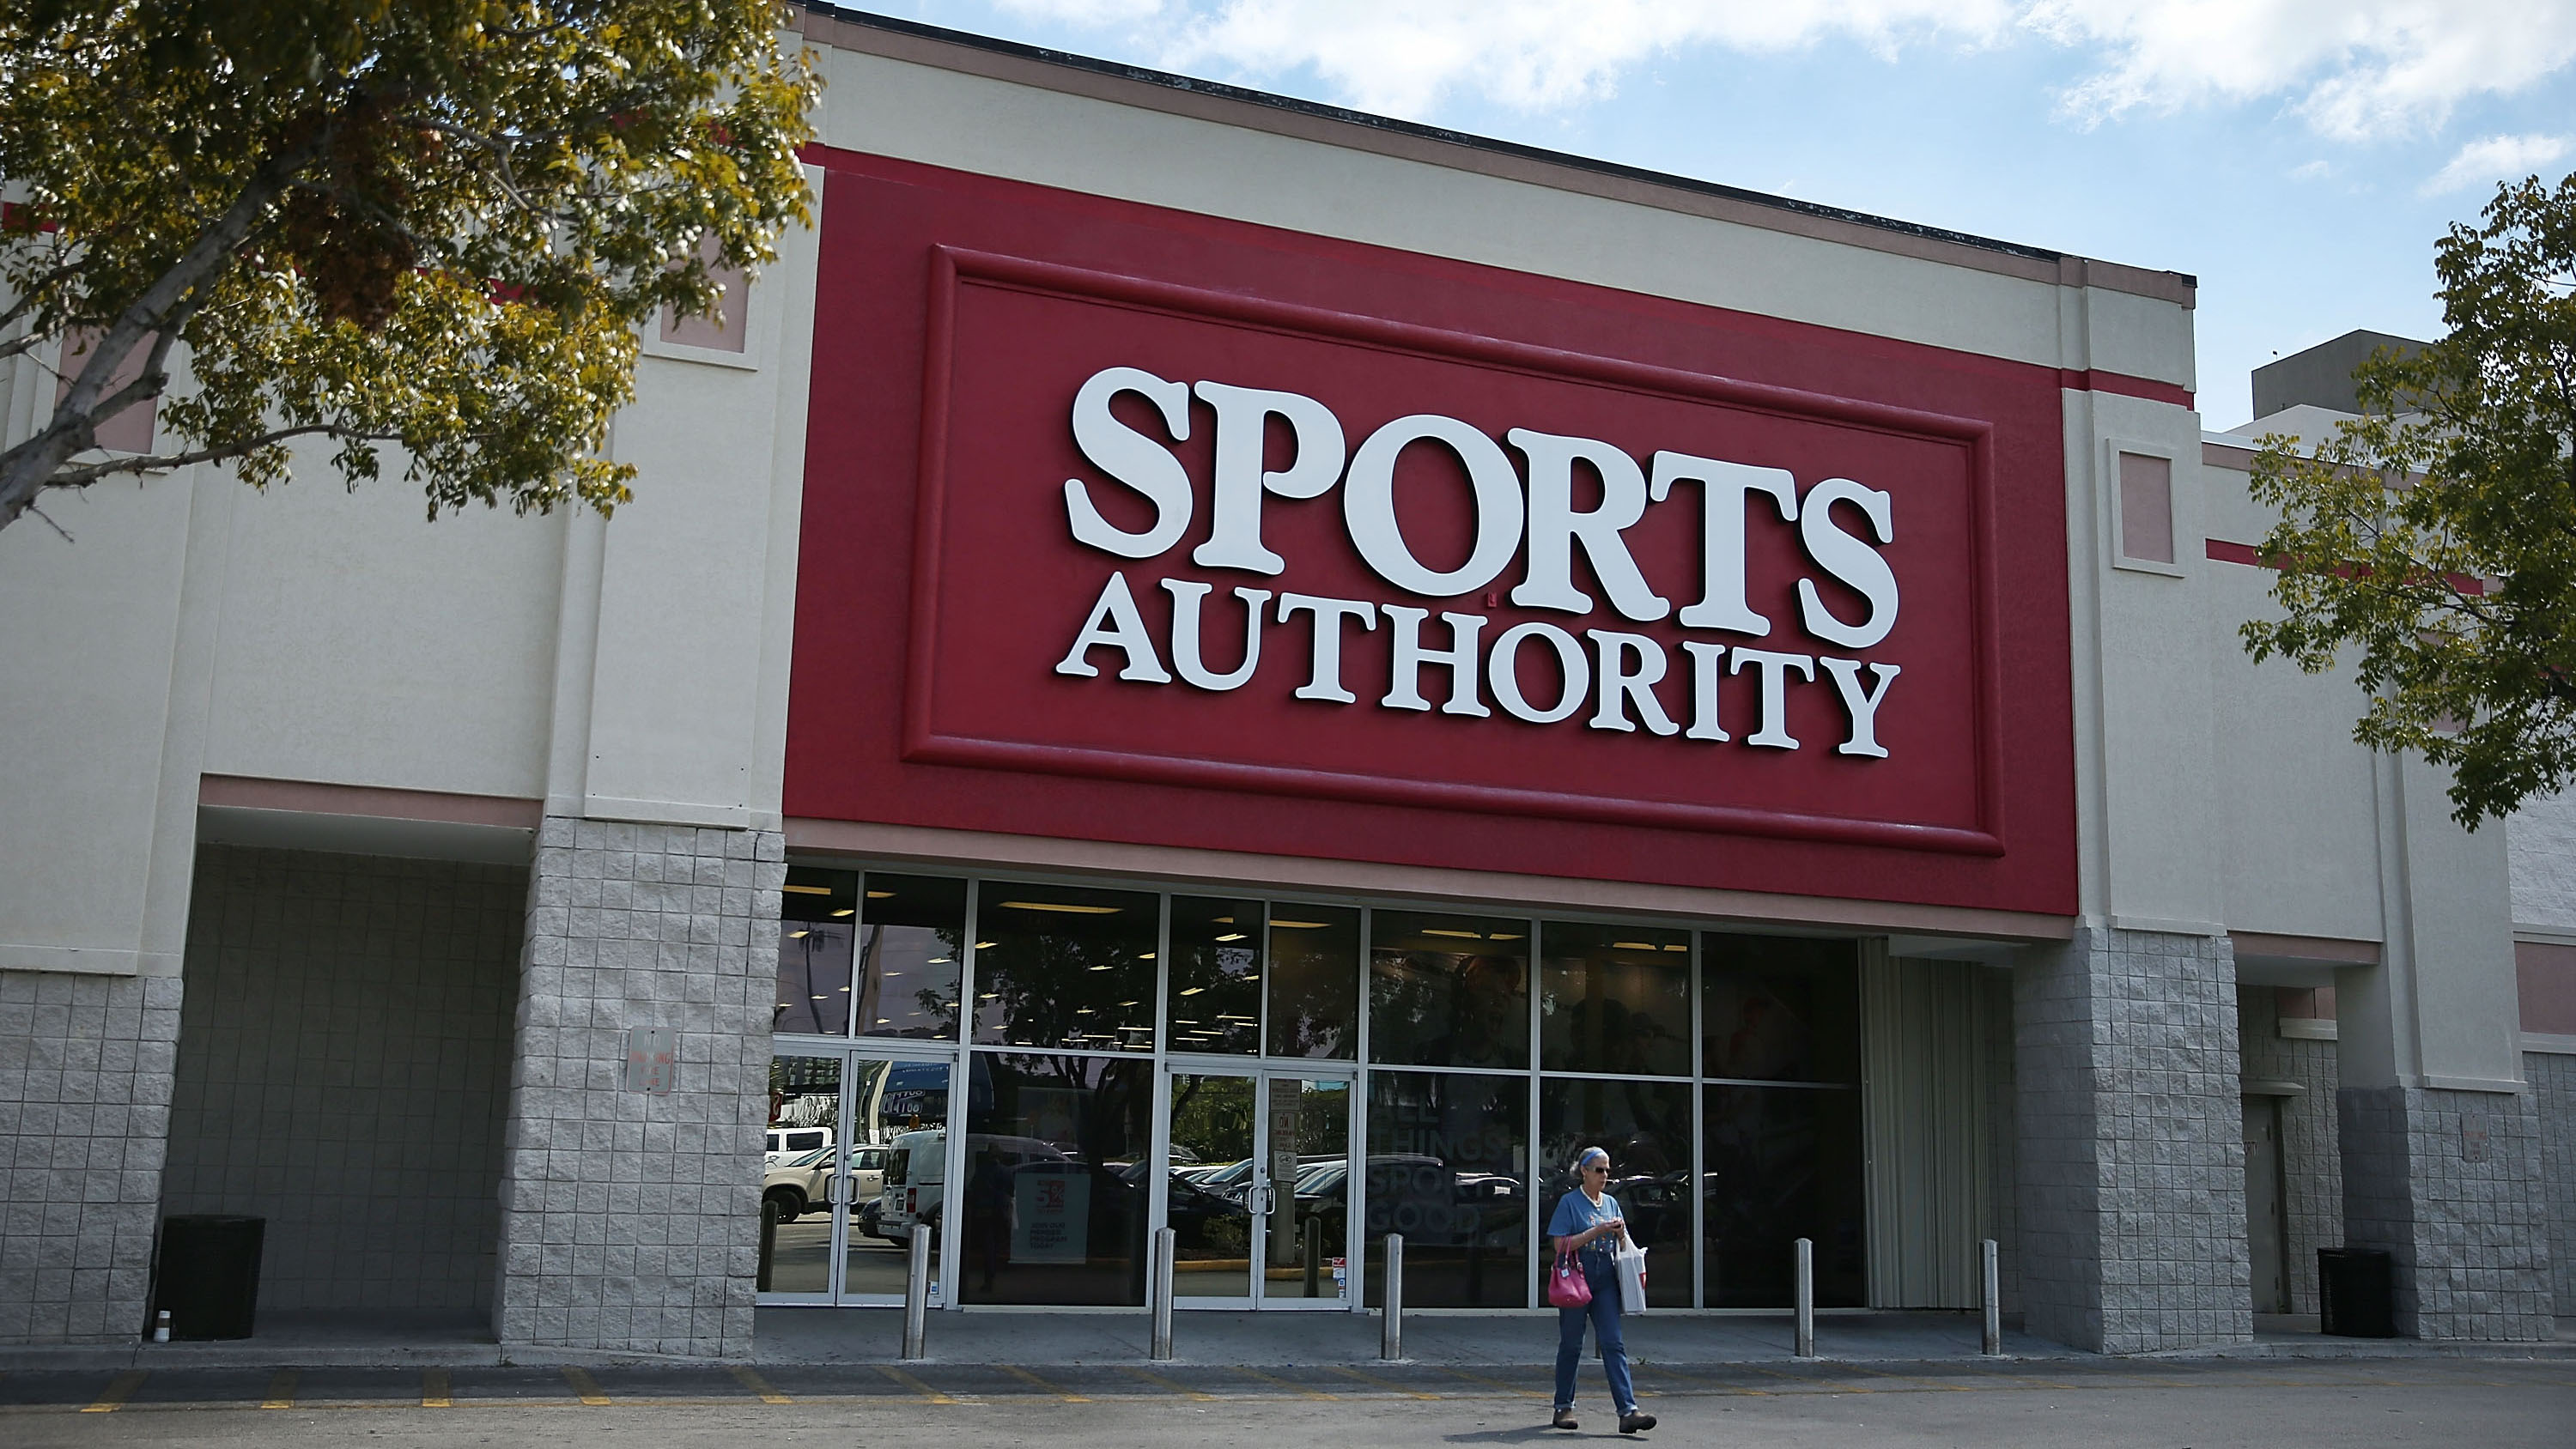 authority sports stores business going ct start wfaa anymore likes executives